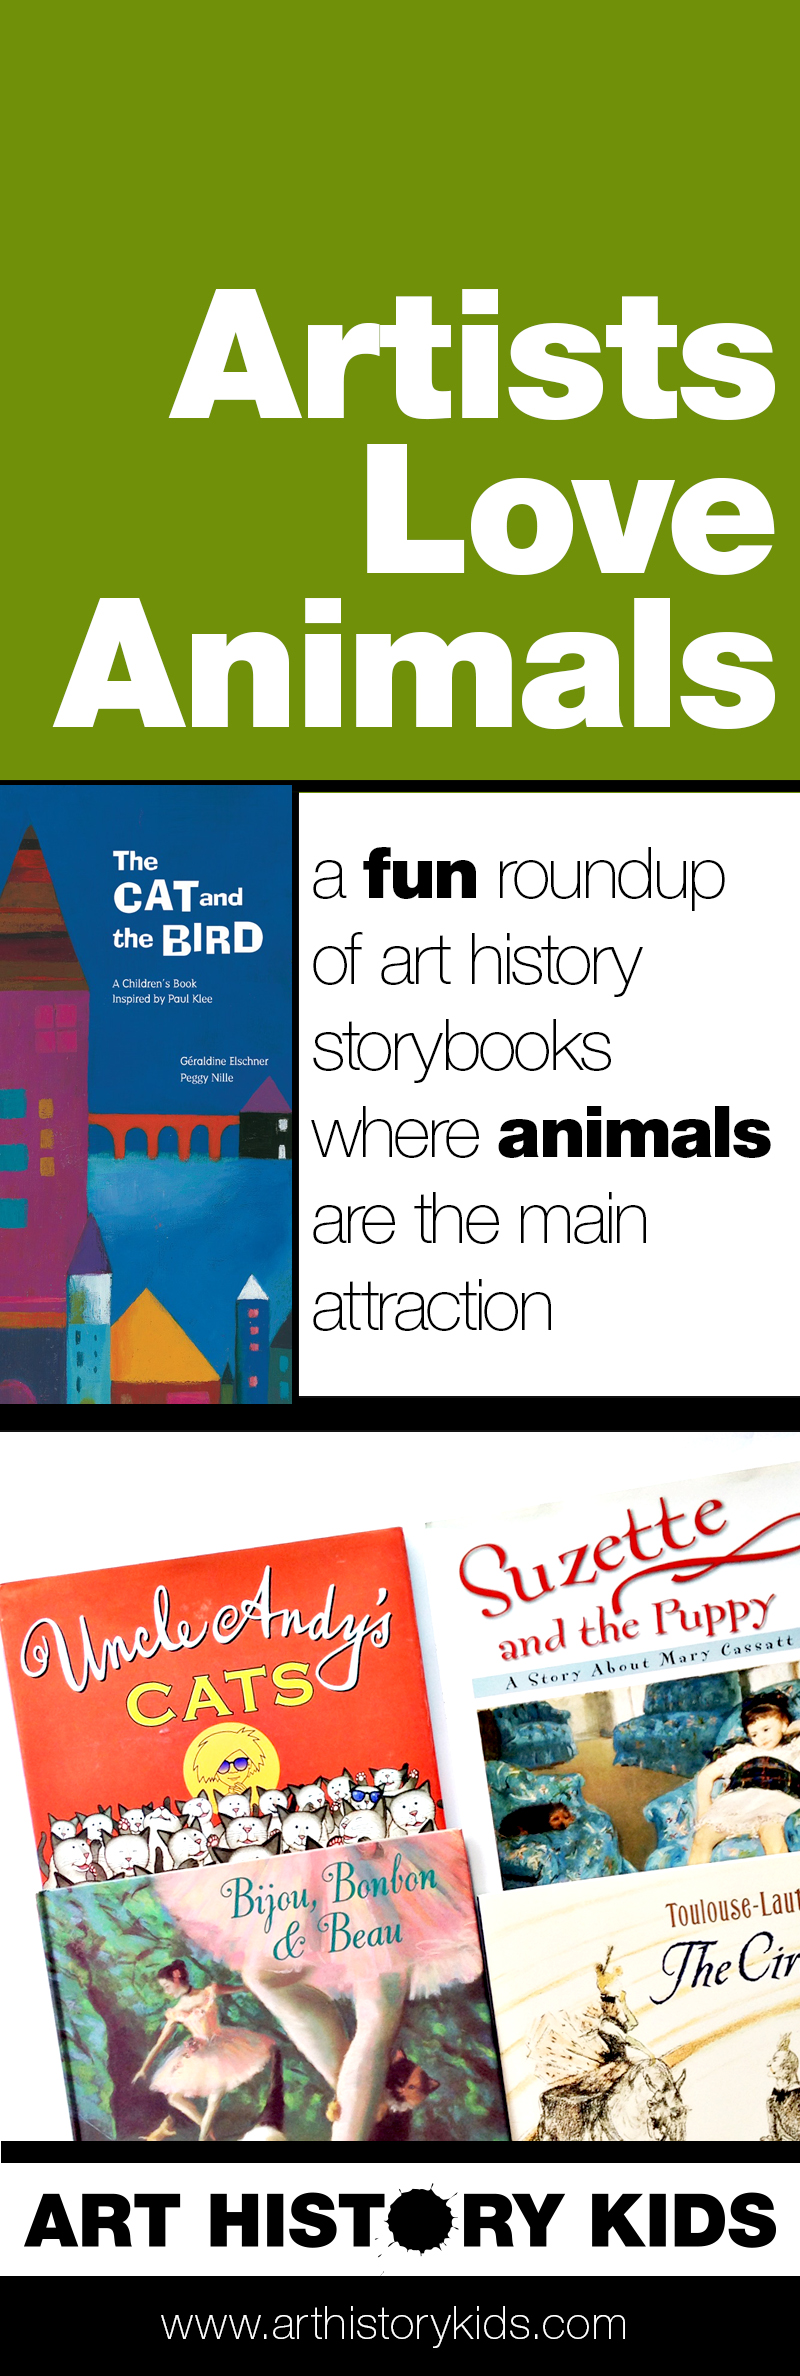 Who doesn't love a kitty purring in your lap, or a playful puppy romping around. These art history books are a perfect introduction for kids. They get to know the famous artists as people first... and even better– people who share their love of furry friends.